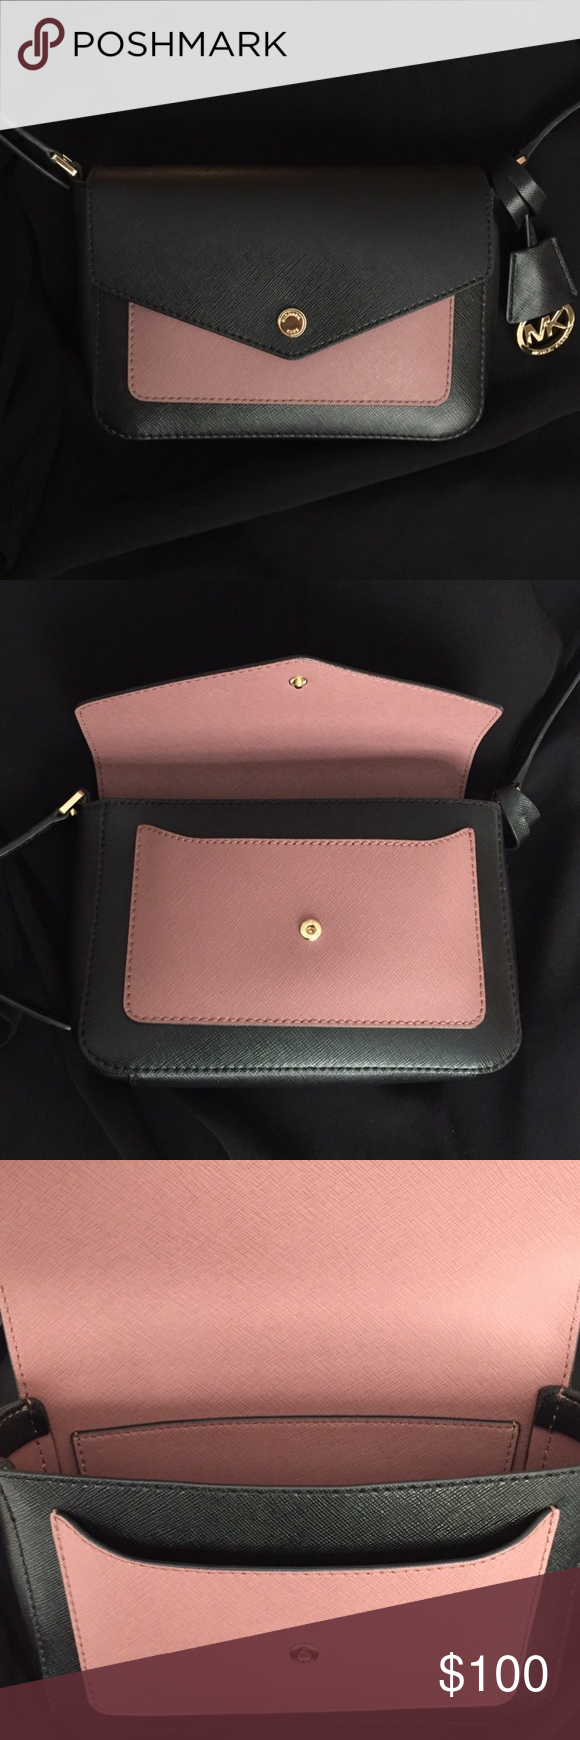 """Michael Kors Greenwich Colorblock Purse From MICHAEL Michael Kors Collection  • Bi-color in Dusty Rose and Black Saffiano leather, petite crossbody  • Extra space with an unlined interior • Adjustable crossbody strap with 20""""-23"""" drop • Fold-over flap with snap closure • Exterior features 18k gold-plated hardware and 1 front snap pocket • Interior features 1 slip pocket  Tried on, but it wasn't for me. All Tags included with Macy's return sticker as well as Michael Kors Dustbag and Care…"""